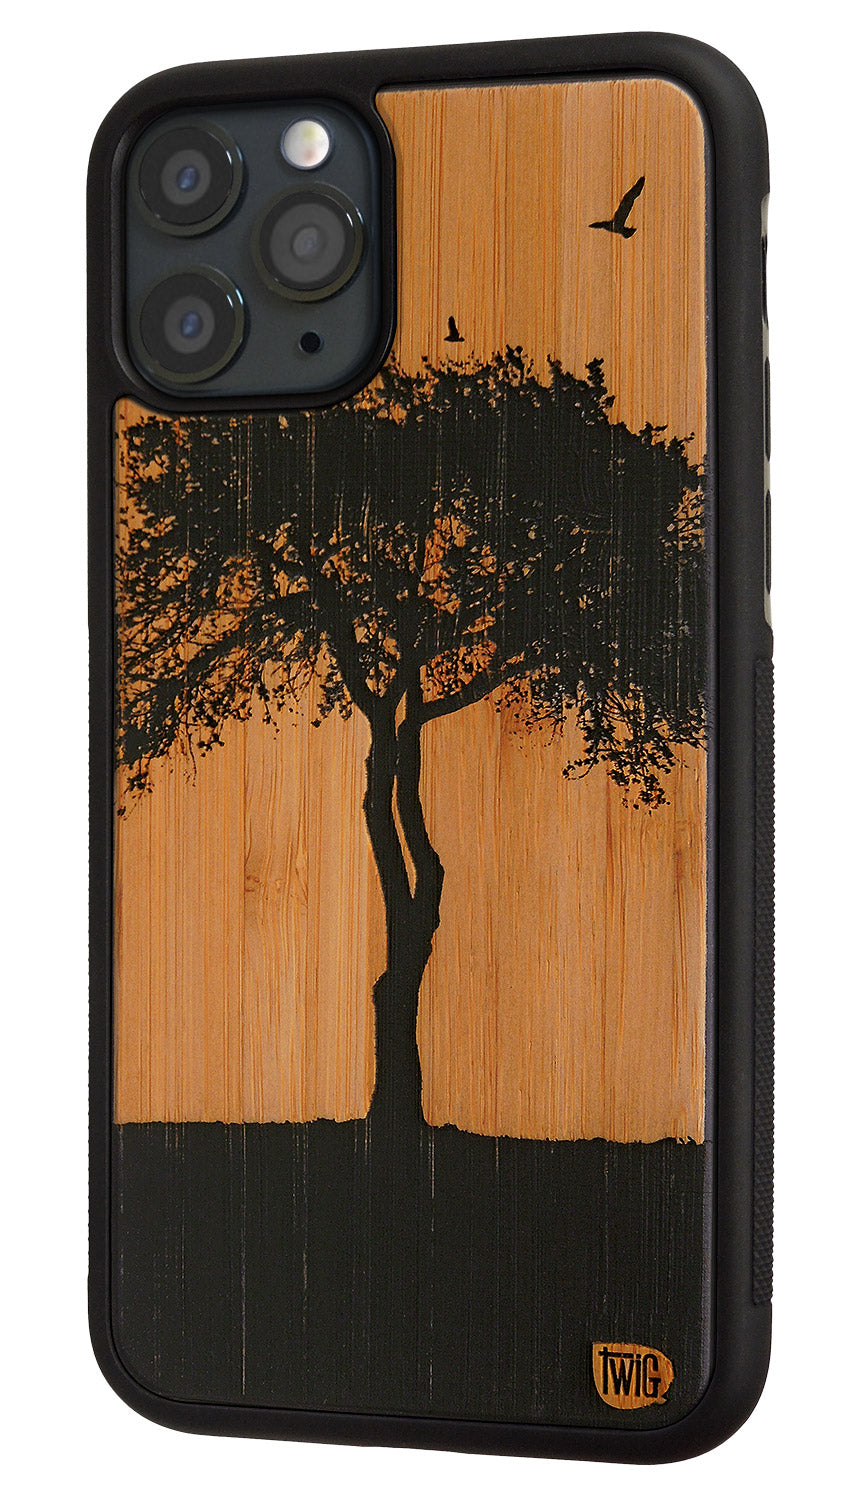 The One Tree - Case for iPhone 11/Pro/Max, Case for iPhone 11/Pro/Max - Twig Case Co.